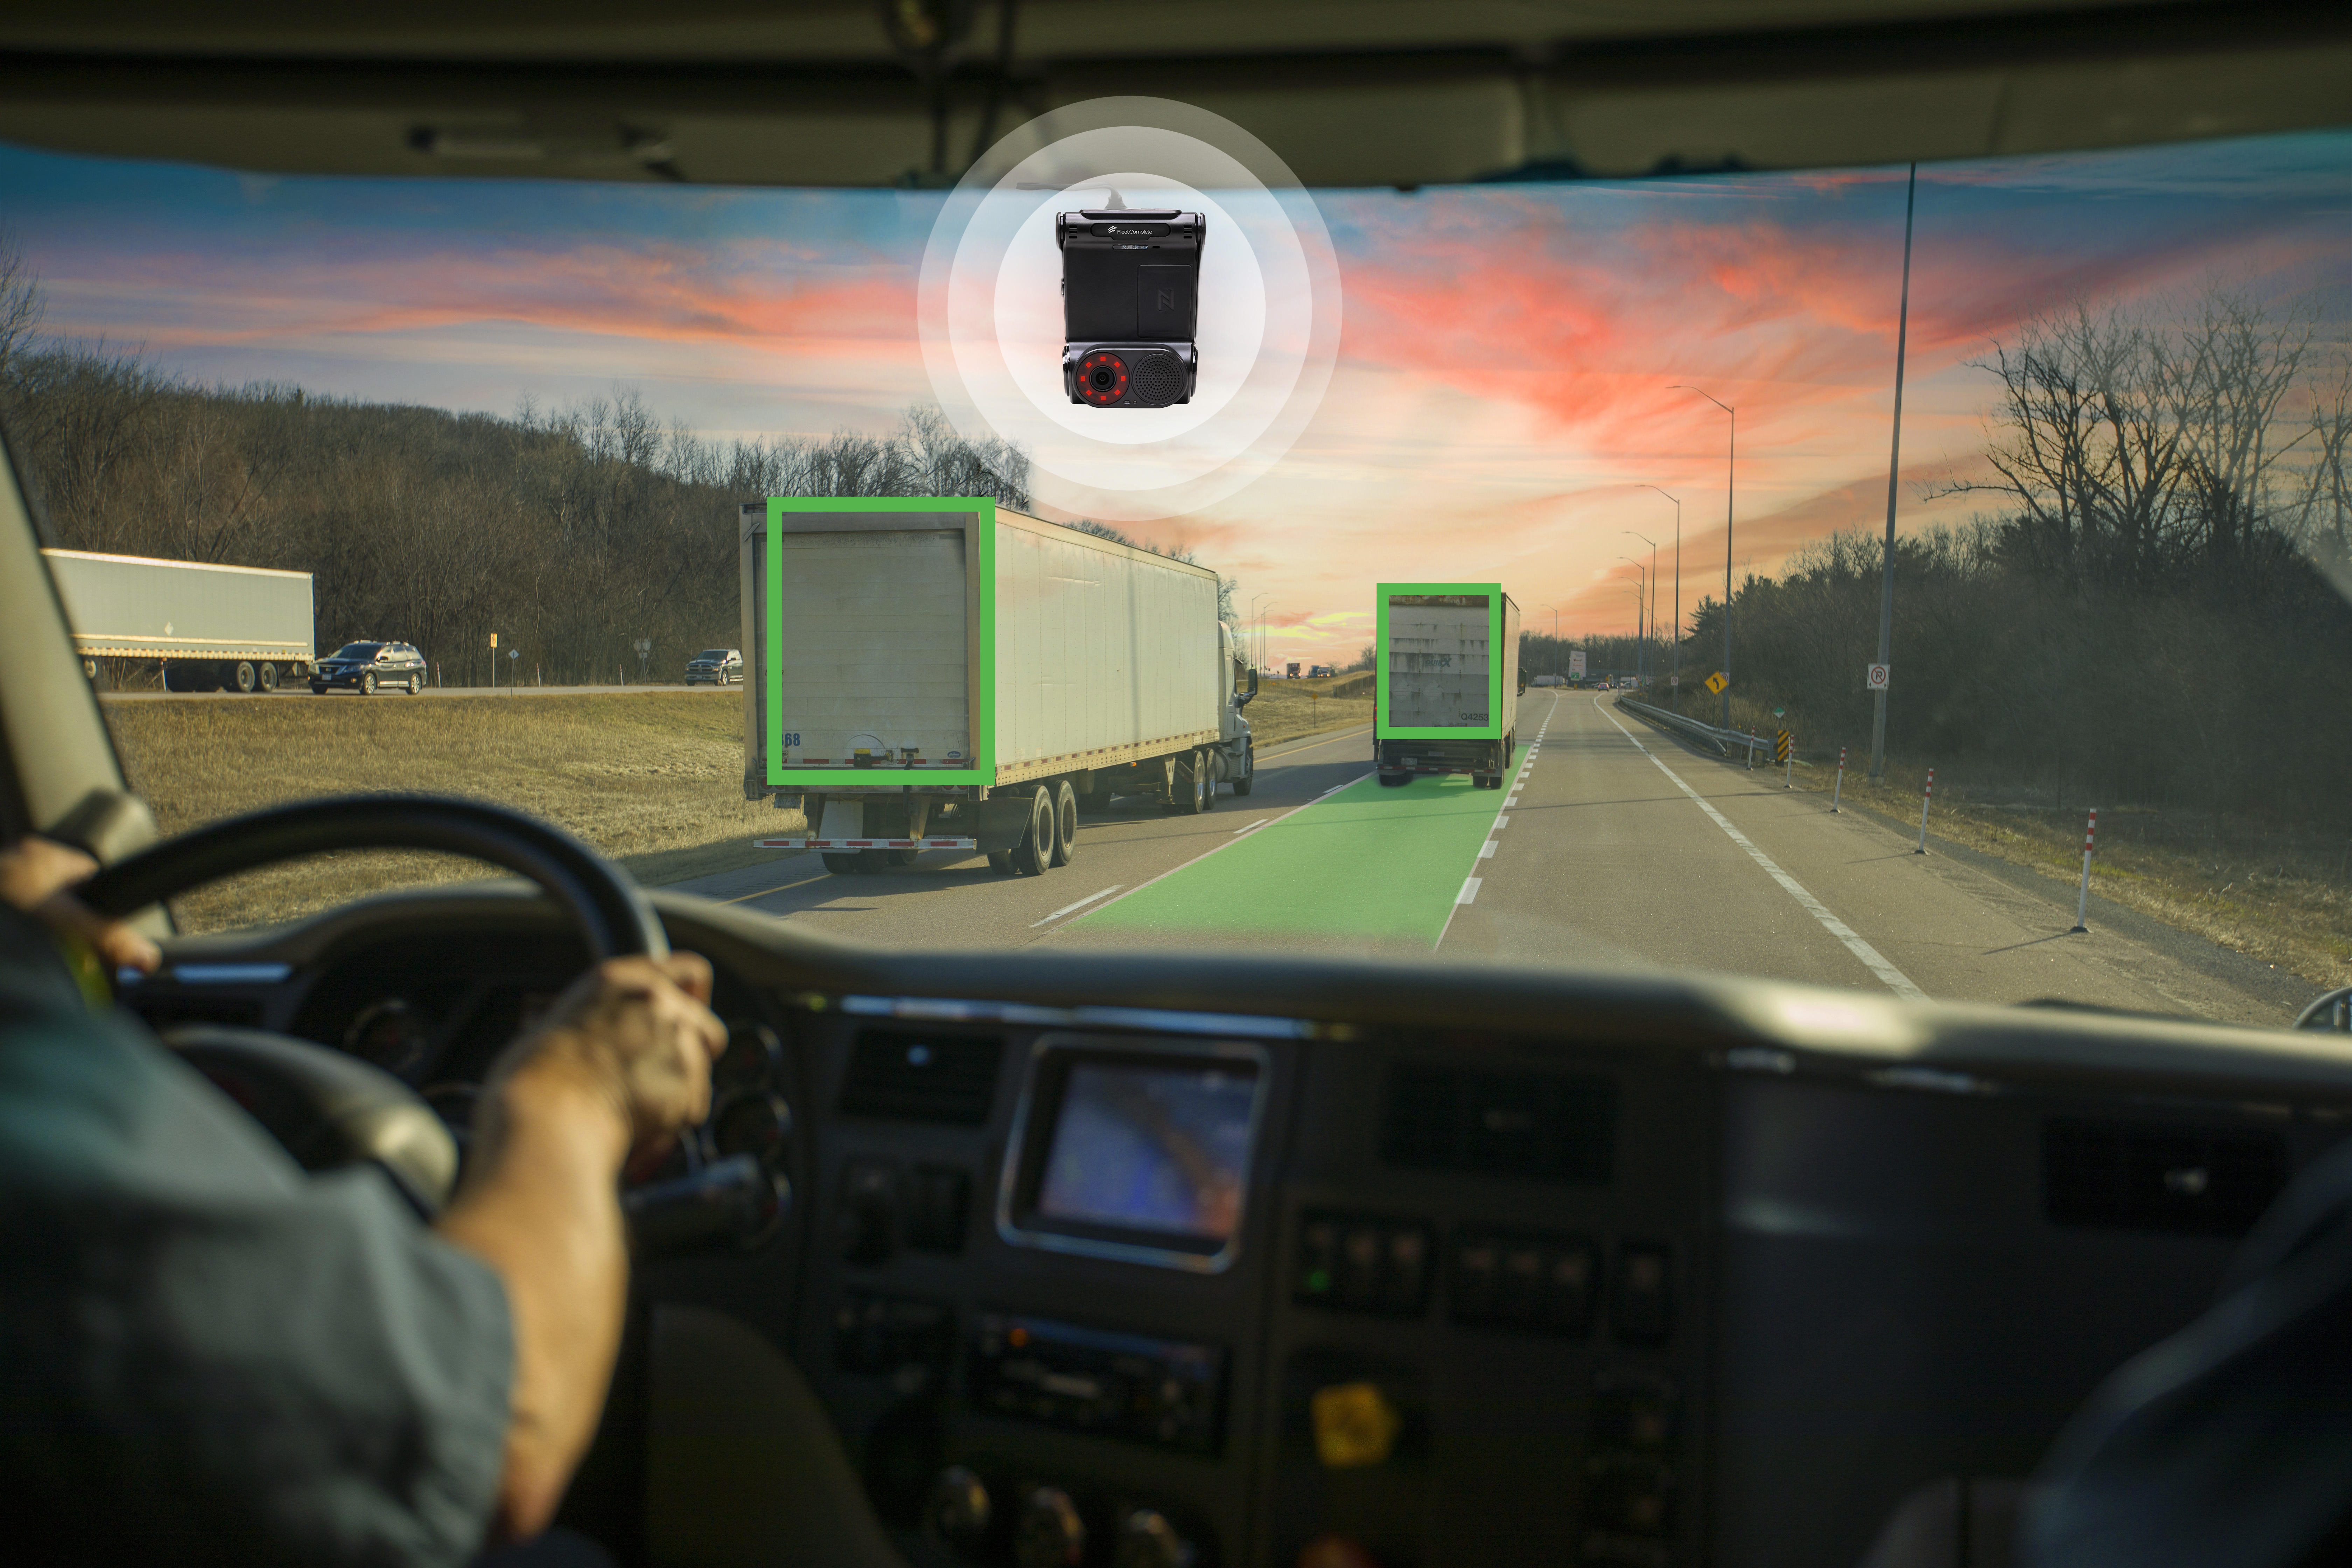 Vision 2.0 dash cam solution in a truck.